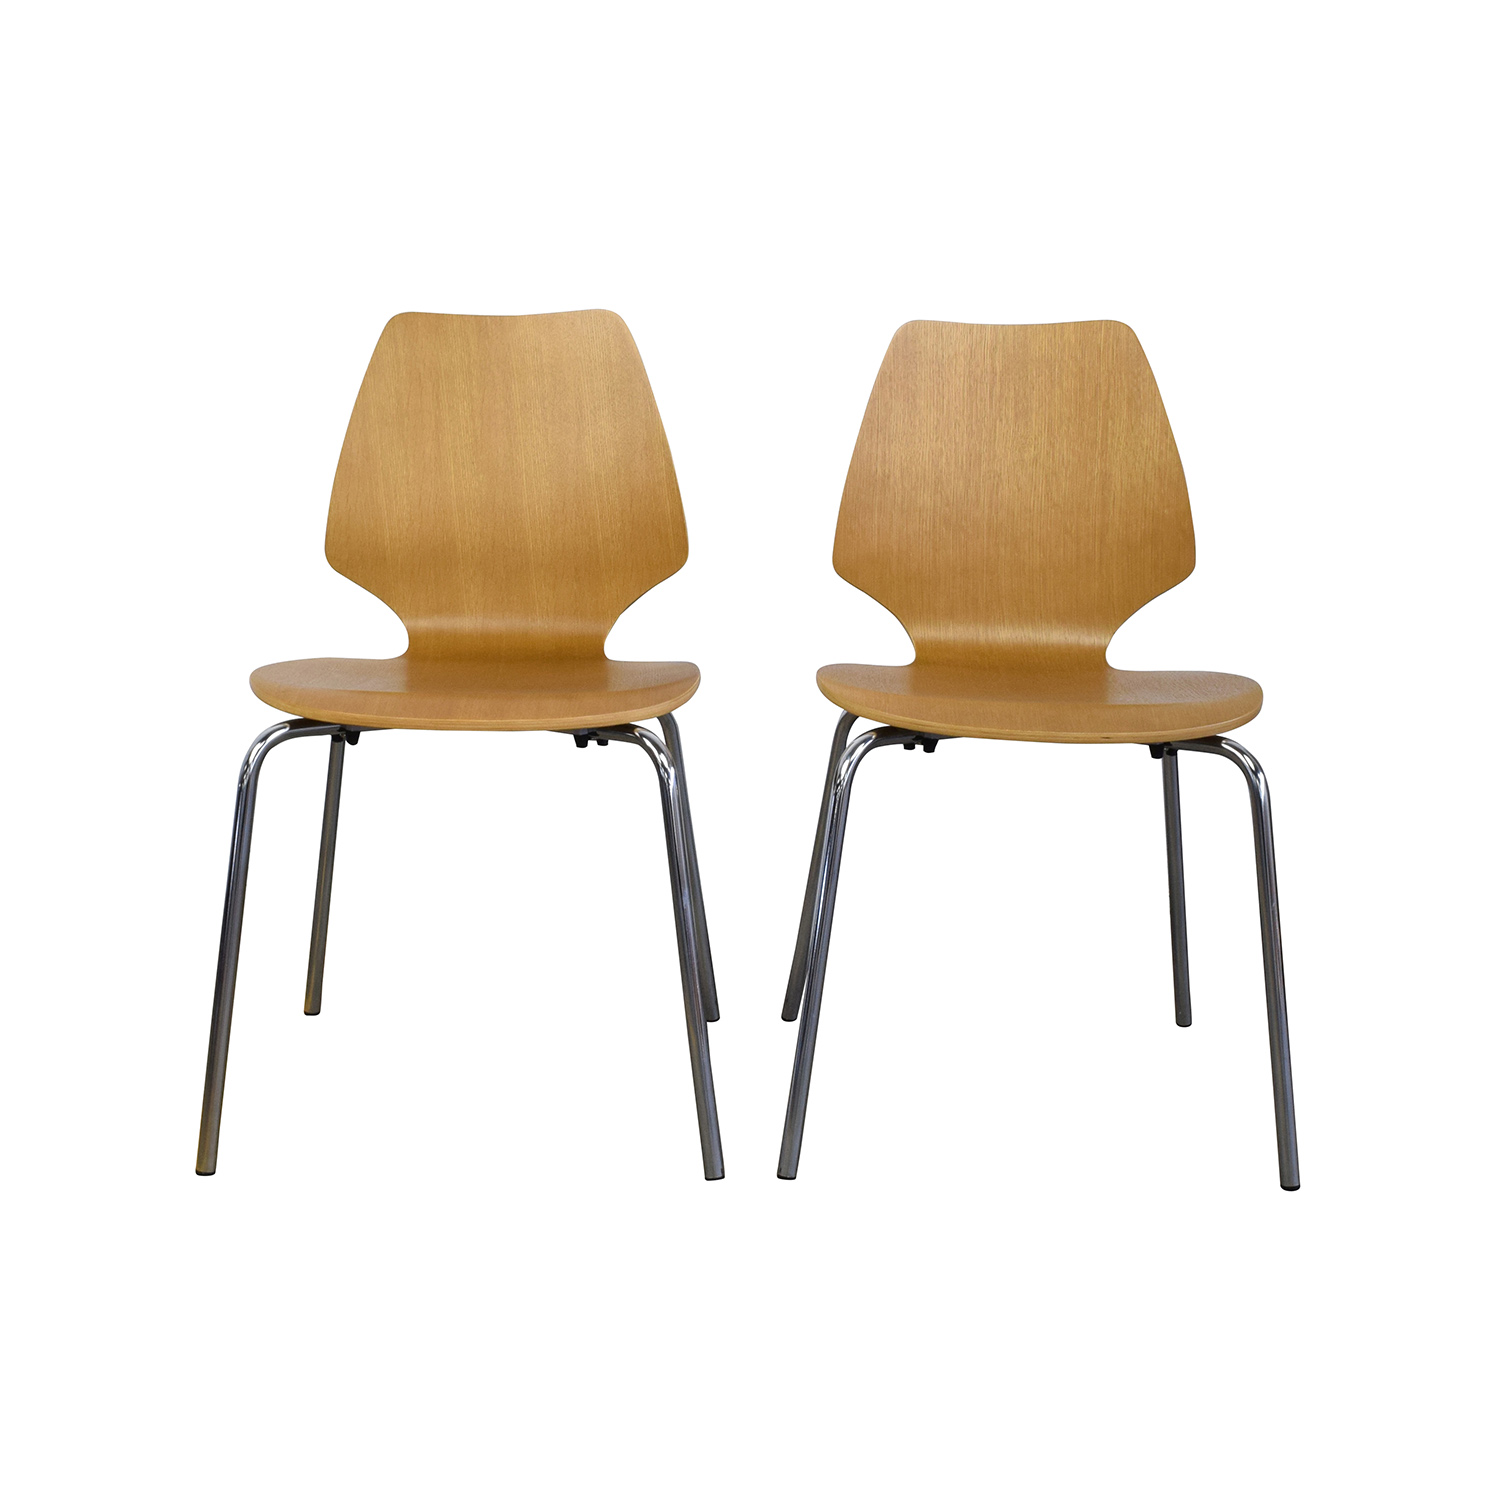 31% OFF   West Elm West Elm Scoop Back Natural Wood Chairs / Chairs